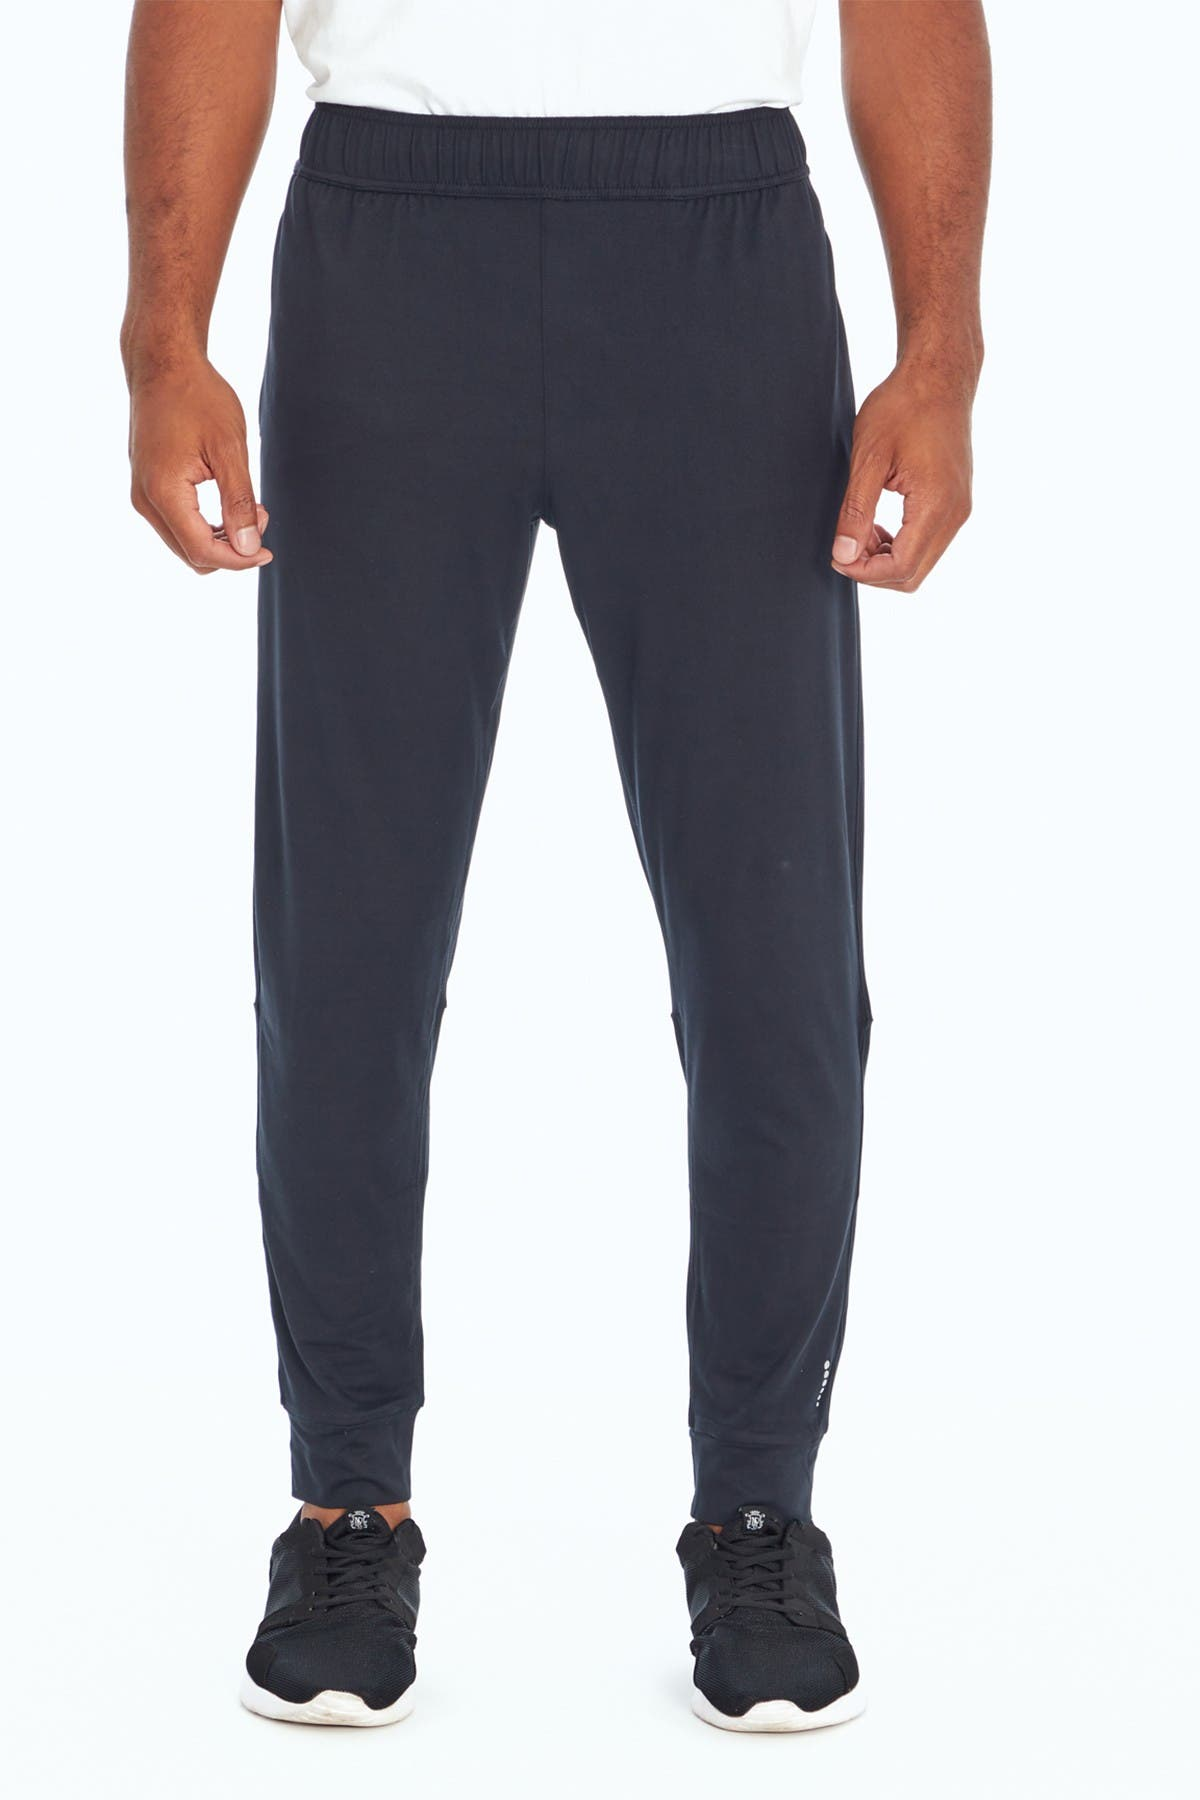 Image of The Balance Collection Clive Cozy Jersey Joggers